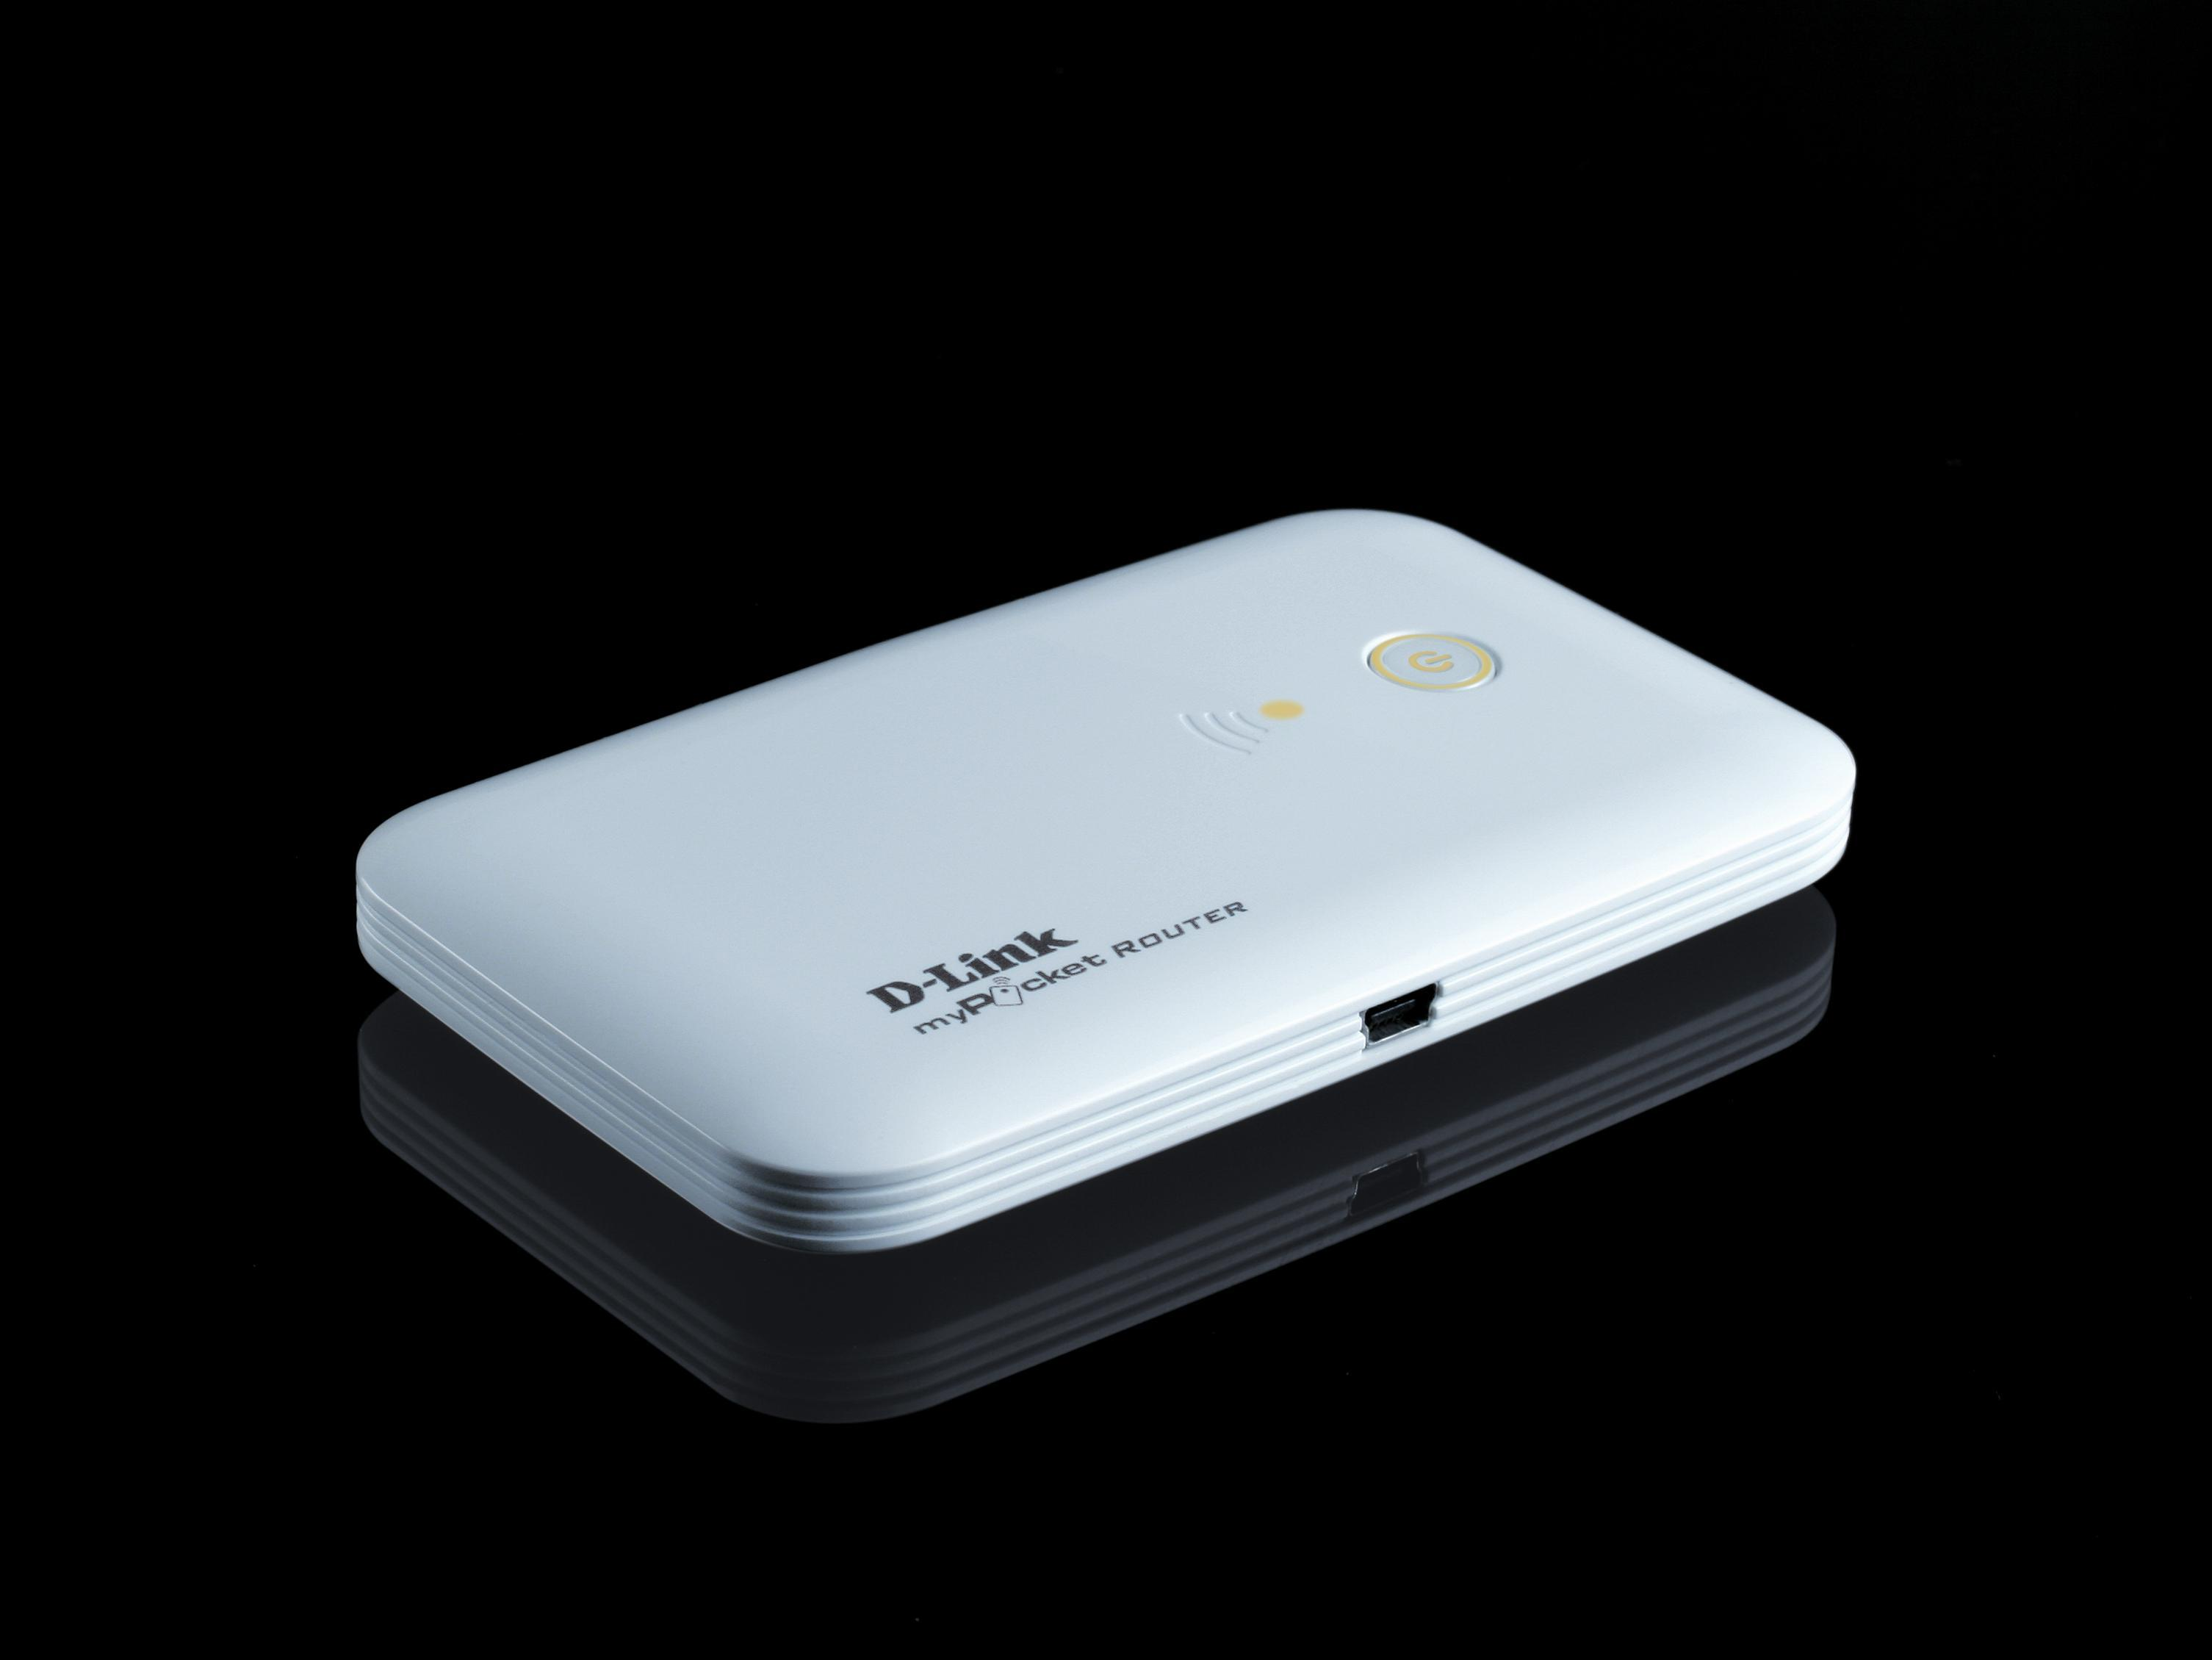 3G Pocket Wireless Router